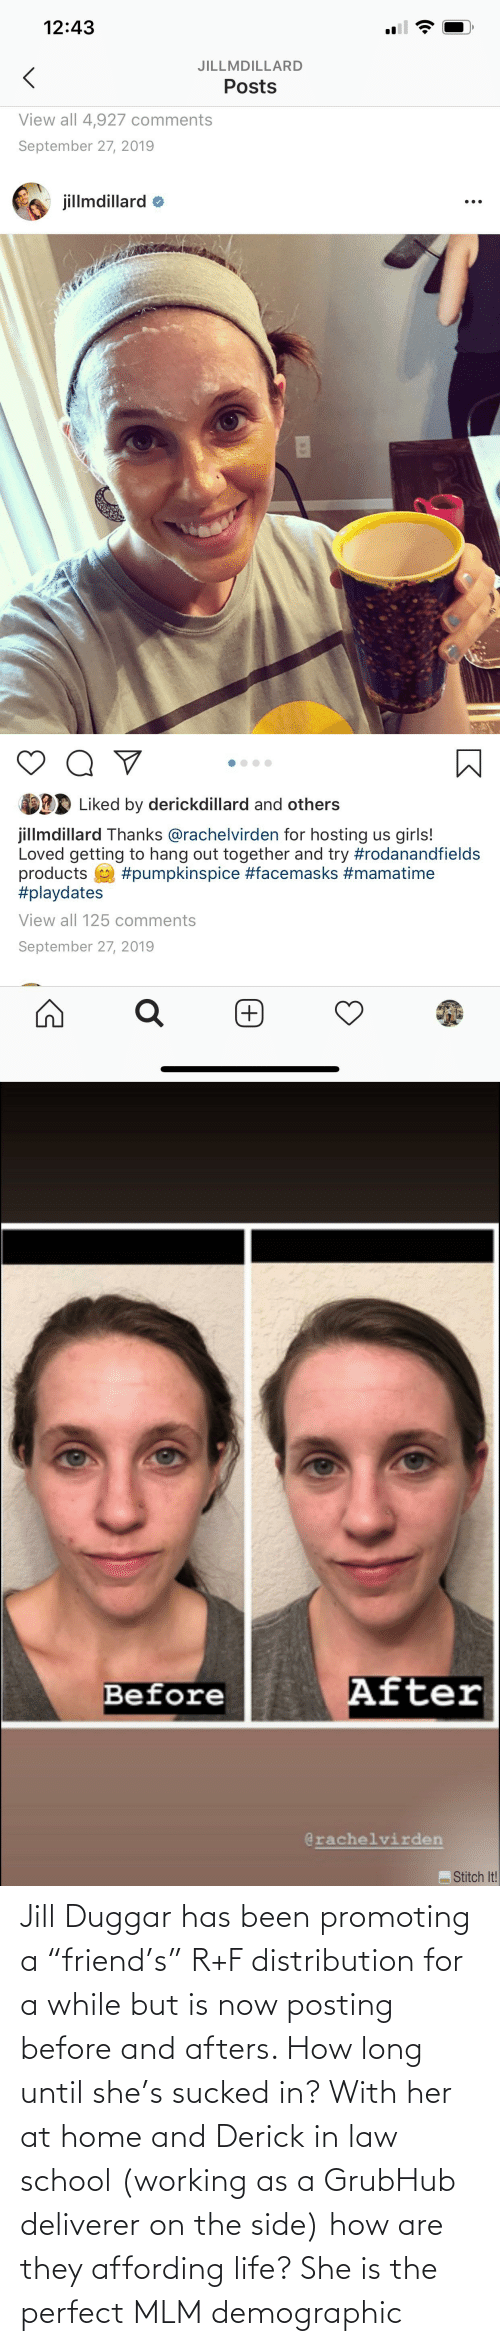 """Law School: Jill Duggar has been promoting a """"friend's"""" R+F distribution for a while but is now posting before and afters. How long until she's sucked in? With her at home and Derick in law school (working as a GrubHub deliverer on the side) how are they affording life? She is the perfect MLM demographic"""